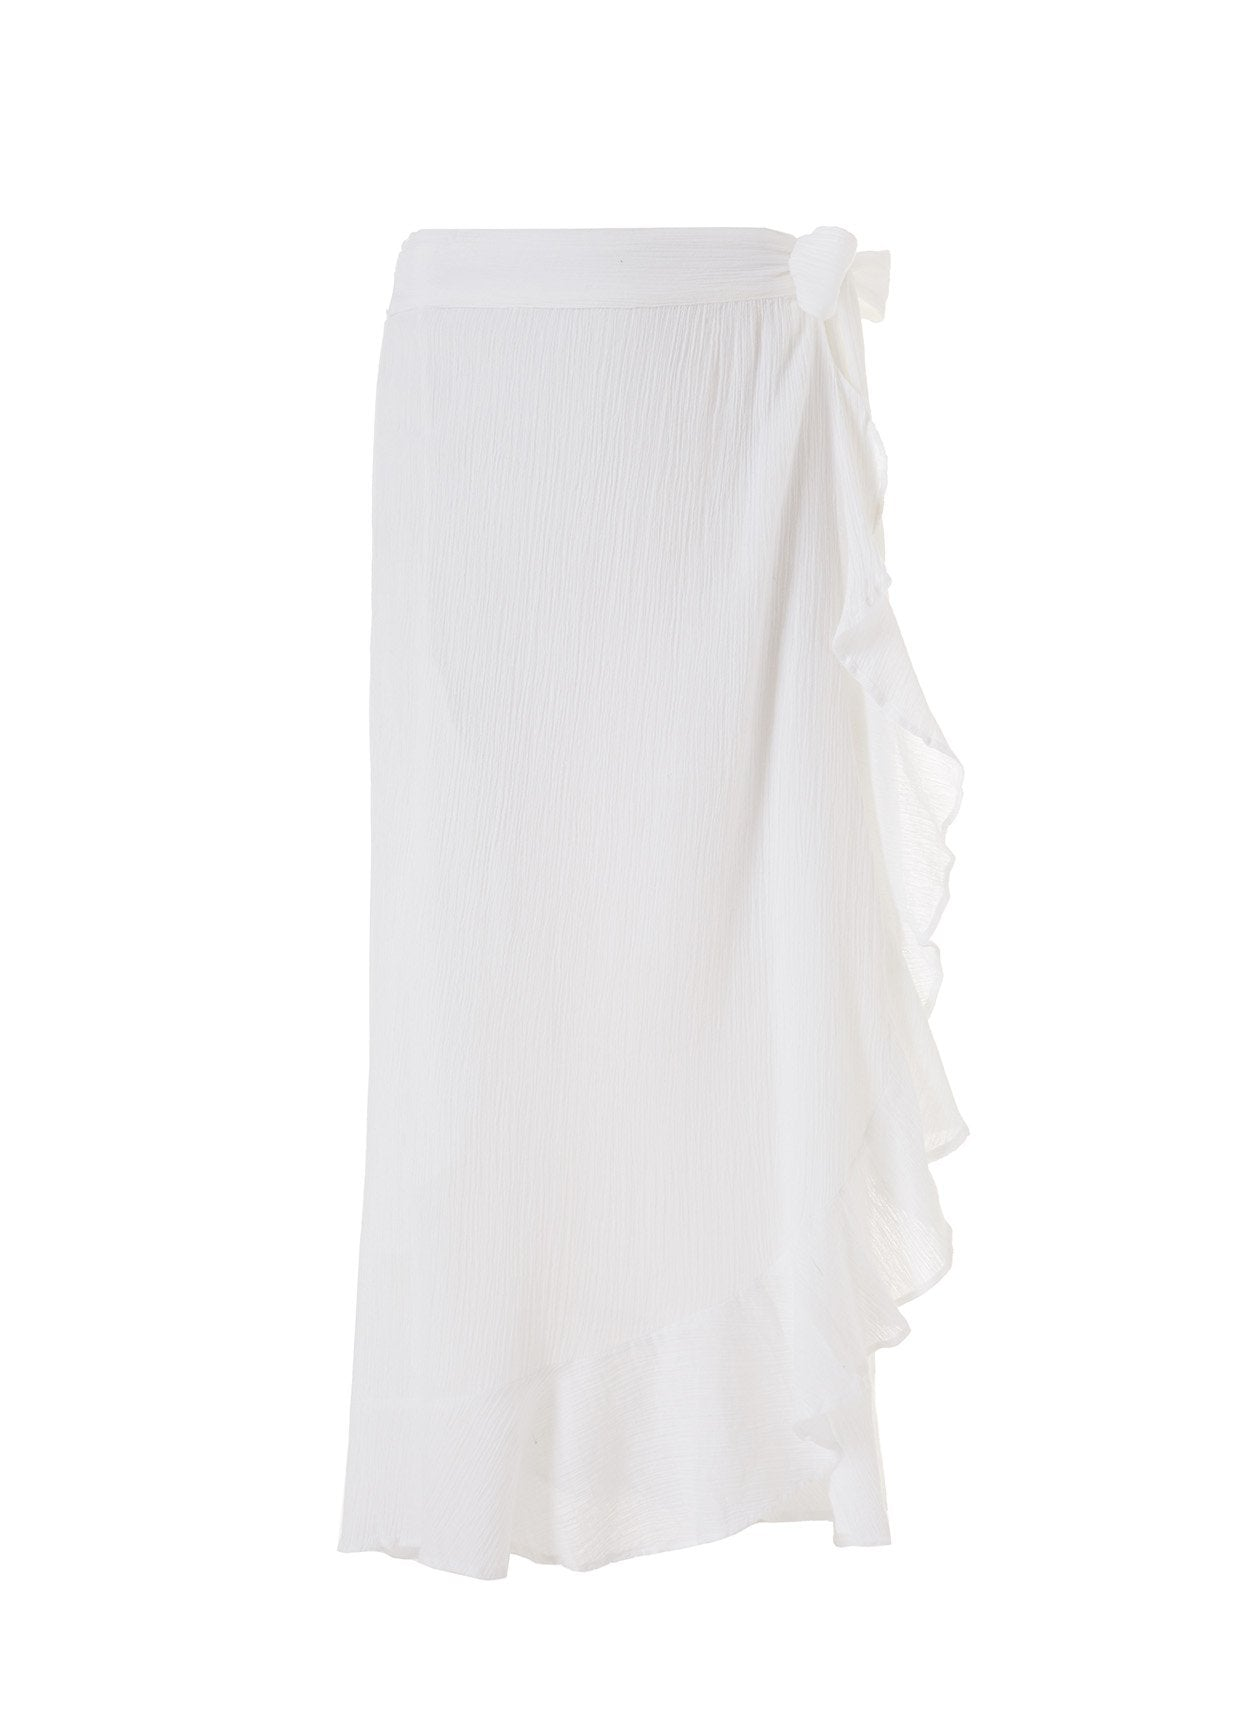 Danni White Long Skirt